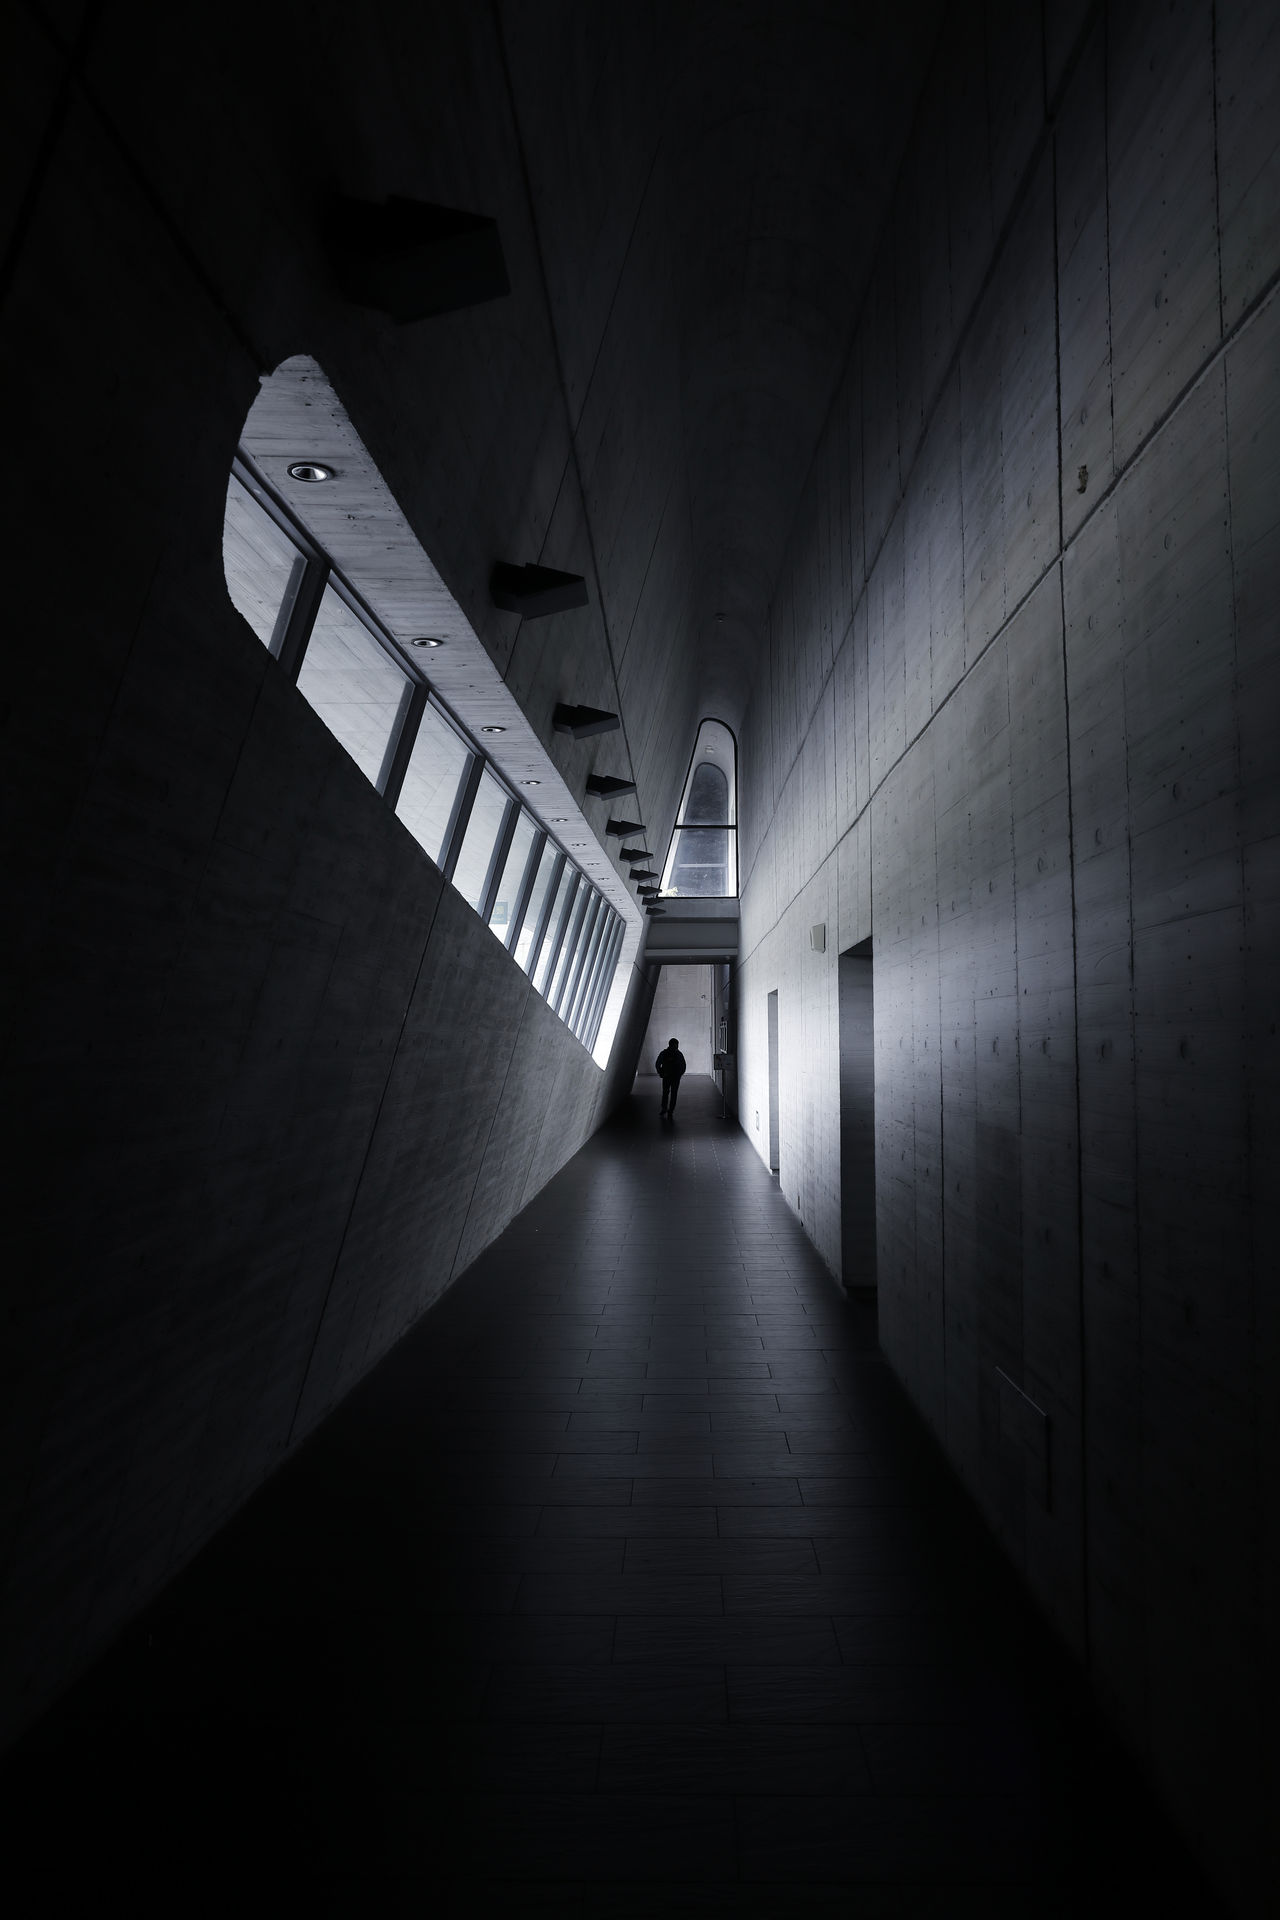 Architectural Feature Architecture Architecture_collection Building Built Structure Illuminated Indoors  Inside Light Light And Darkness  Light And Shadow Light In The Darkness Lines Lines And Shapes Lines, Shapes And Curves One Person People Taiwan The Way Forward Tunnel Vanishing Point Way Window Window Frame Window Light